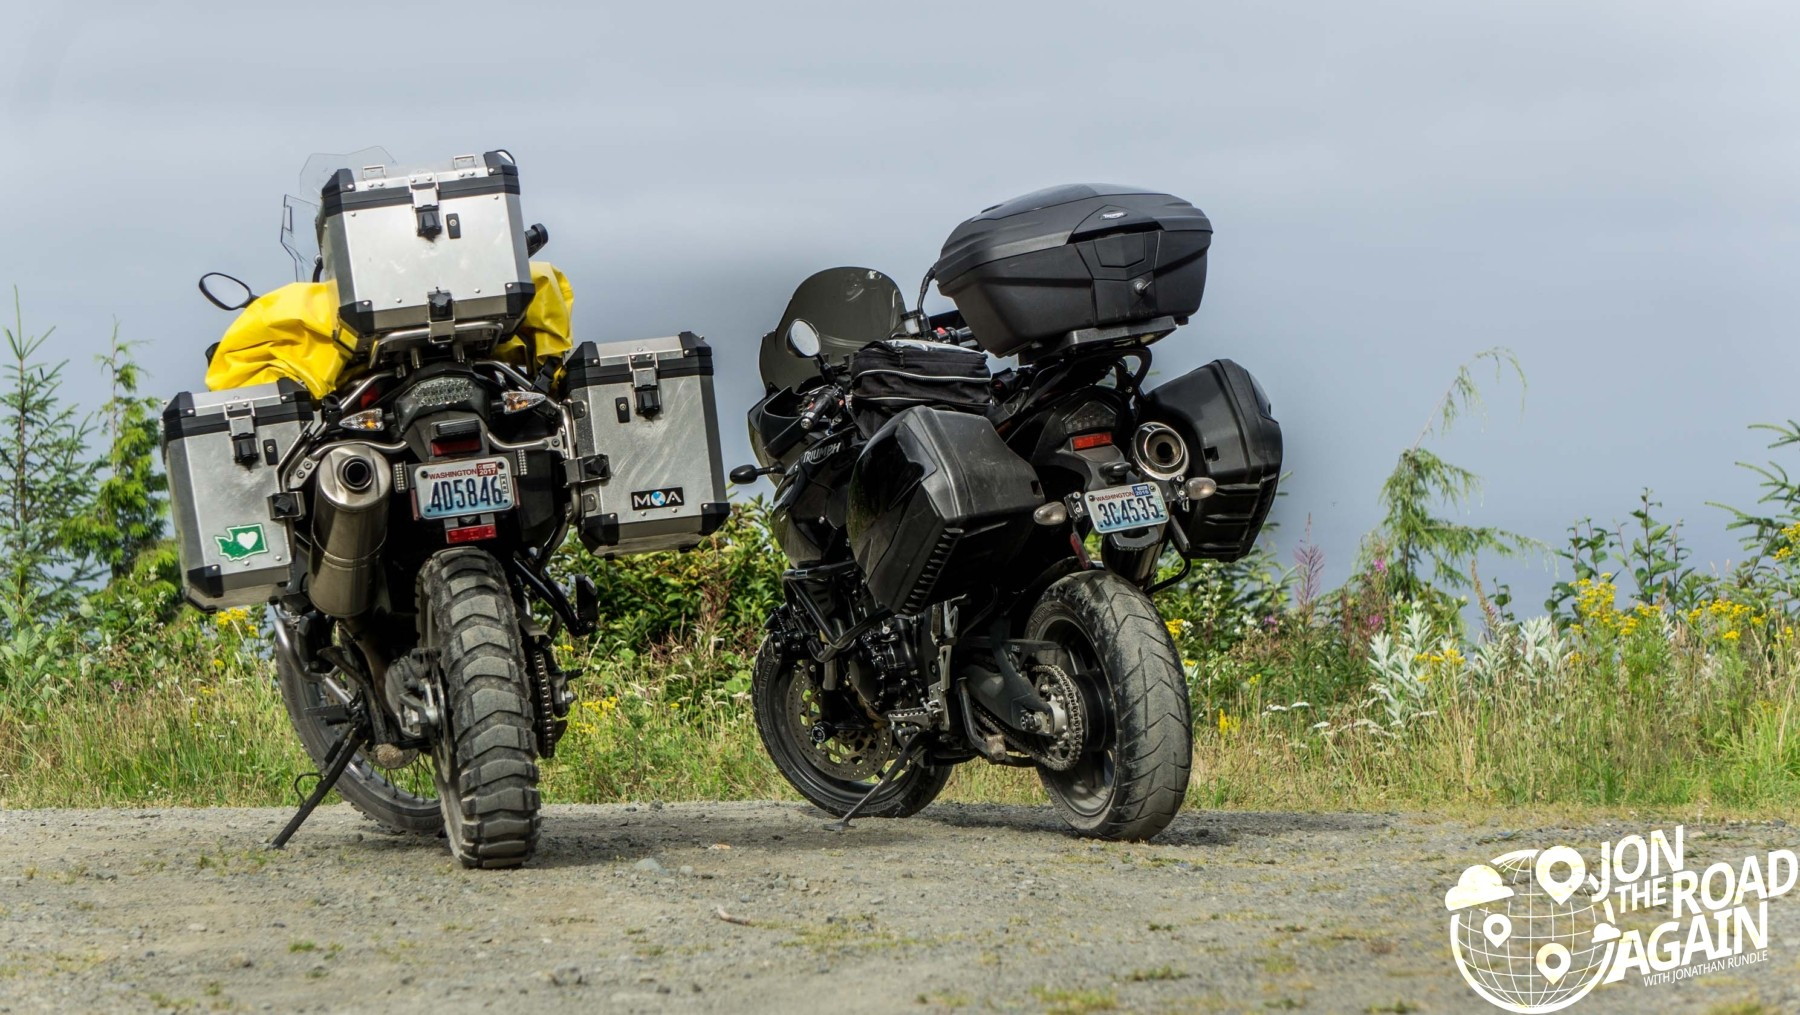 cape flattery motorcycles